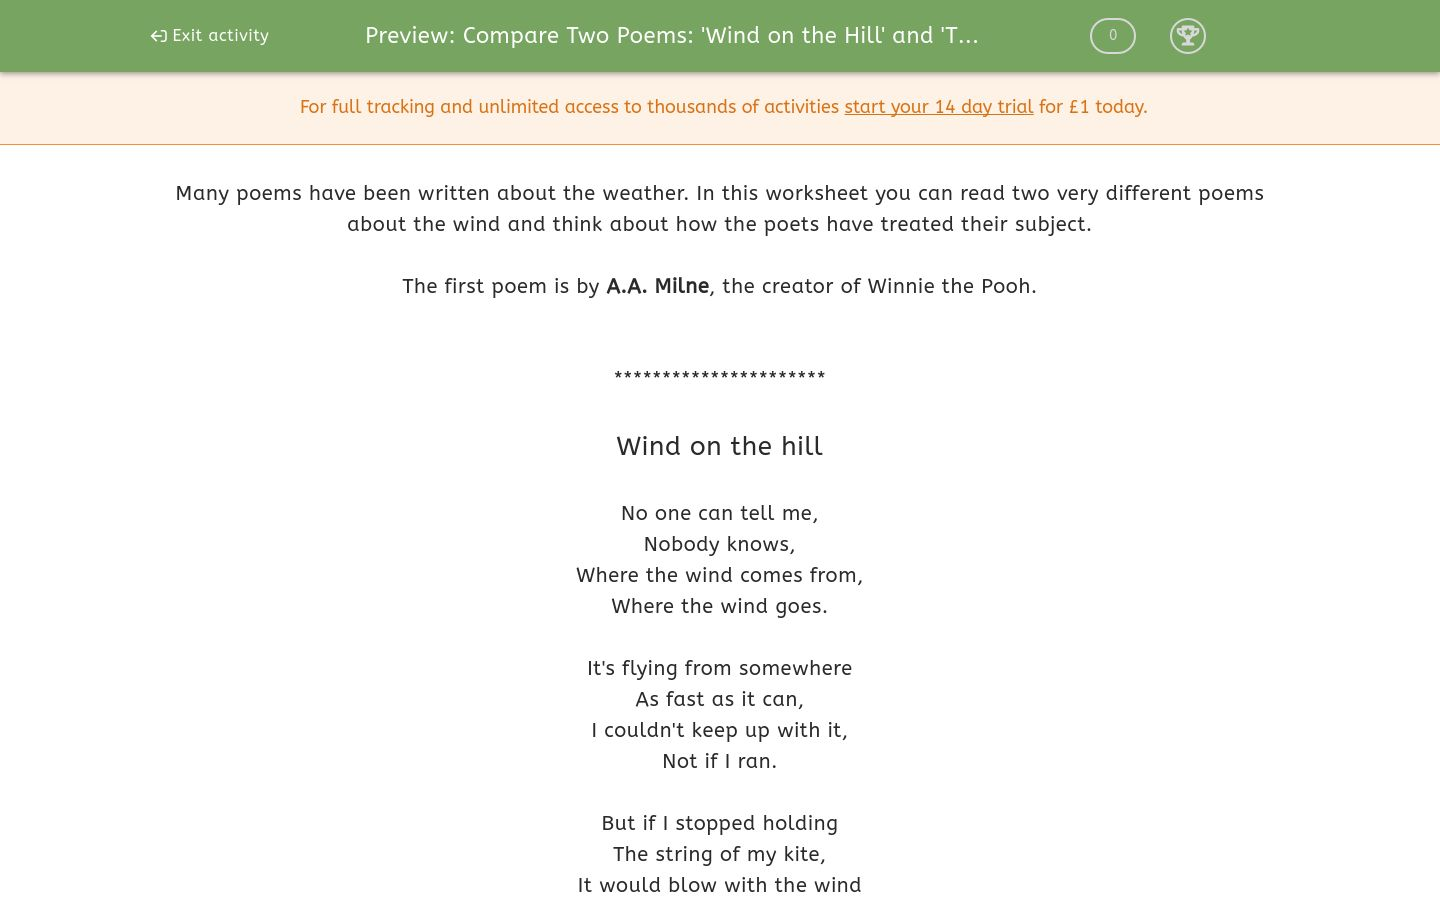 'Compare Two Poems: 'Wind on the Hill' and 'The Wind Begun ...'' worksheet